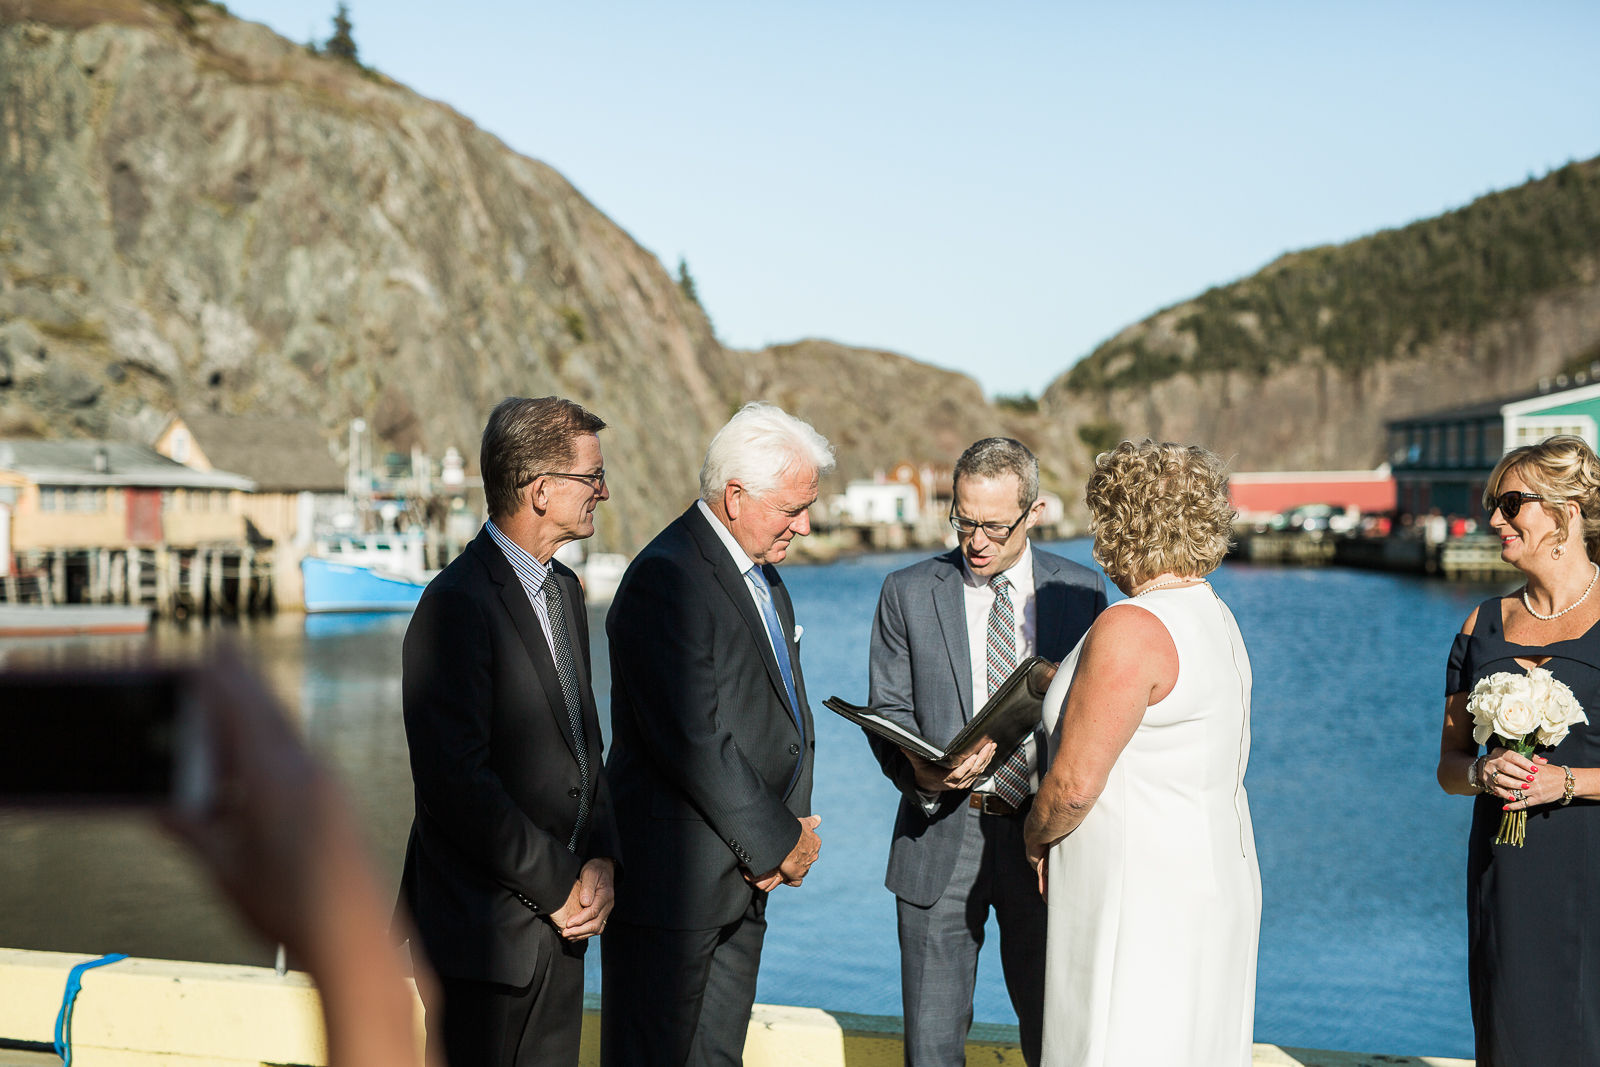 quidi-vidi-wedding-photographer-michelle-don-9.jpg